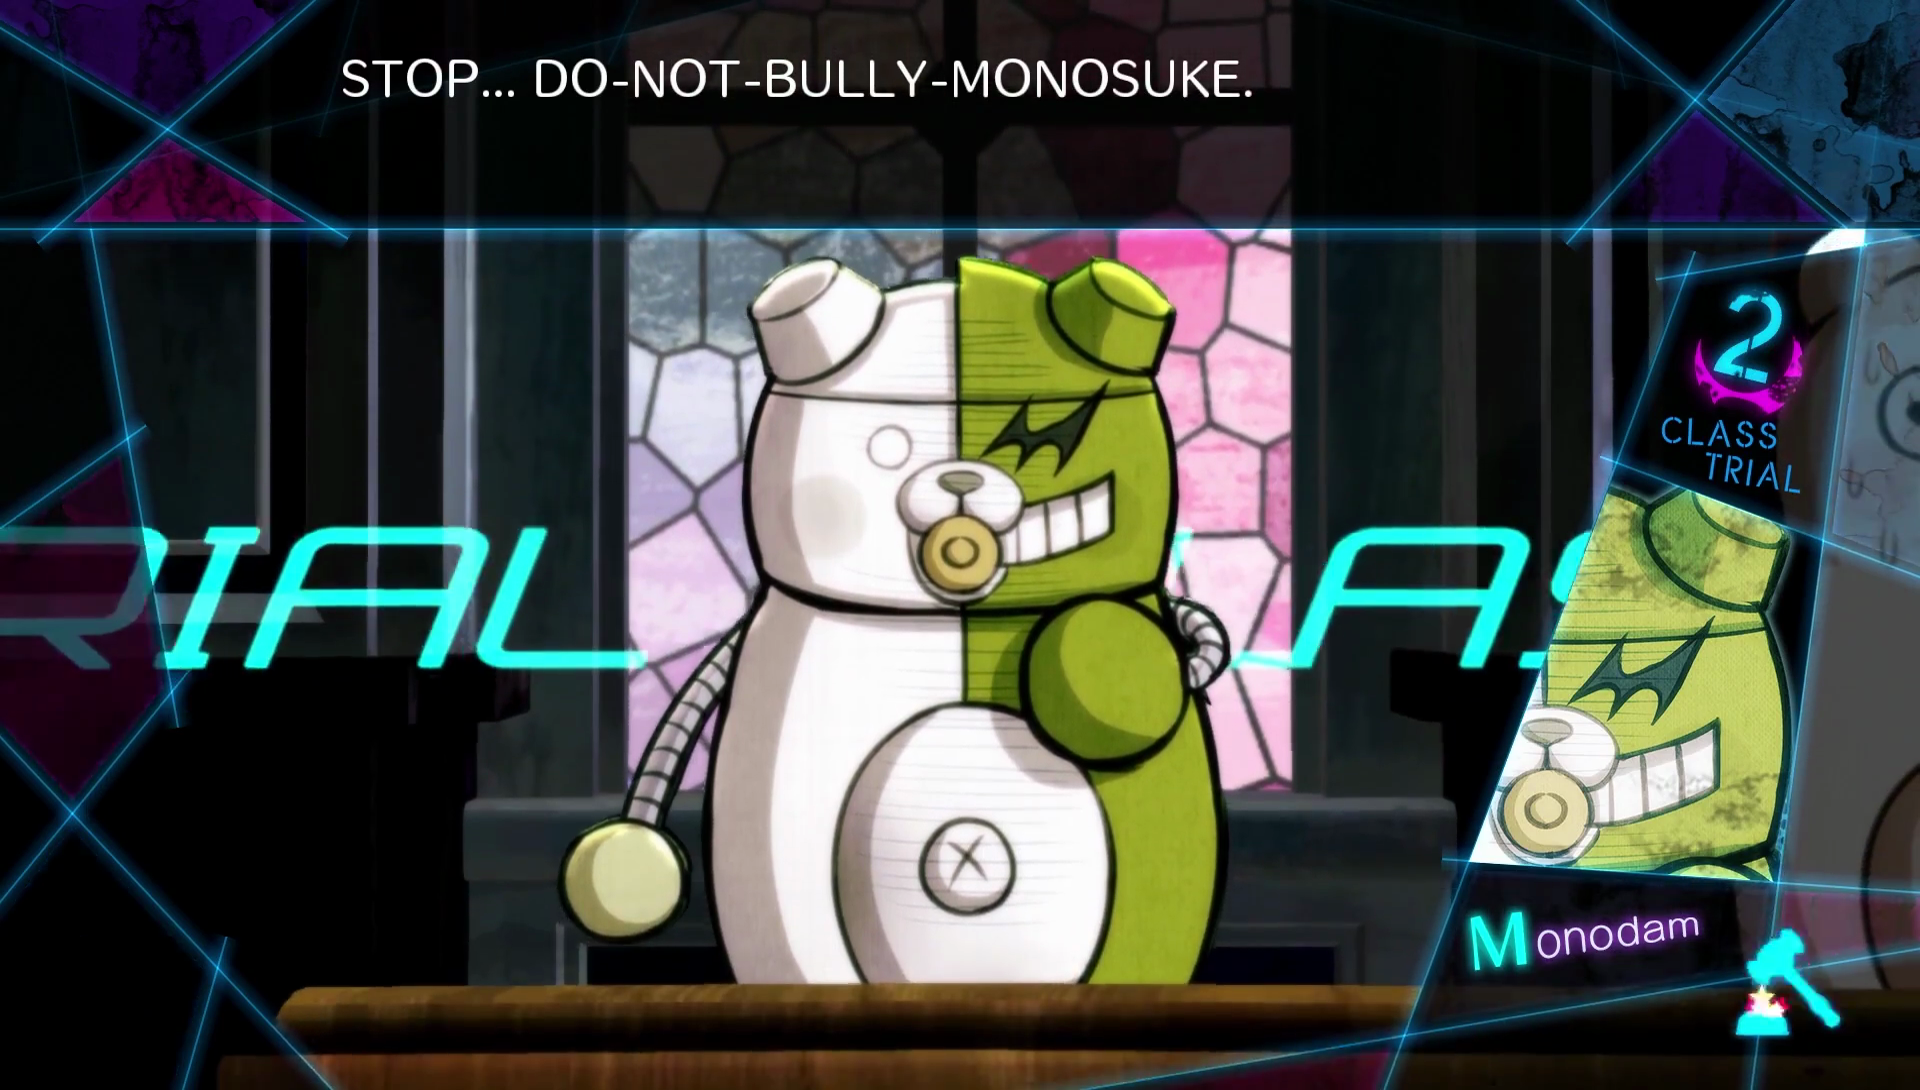 Danganronpa V3 English Dub Roll Call Trailer 1 Japanese Voice Comparison Rice Digital Kokichi oma shares his english voice actor with which other danganronpa character? danganronpa v3 english dub roll call